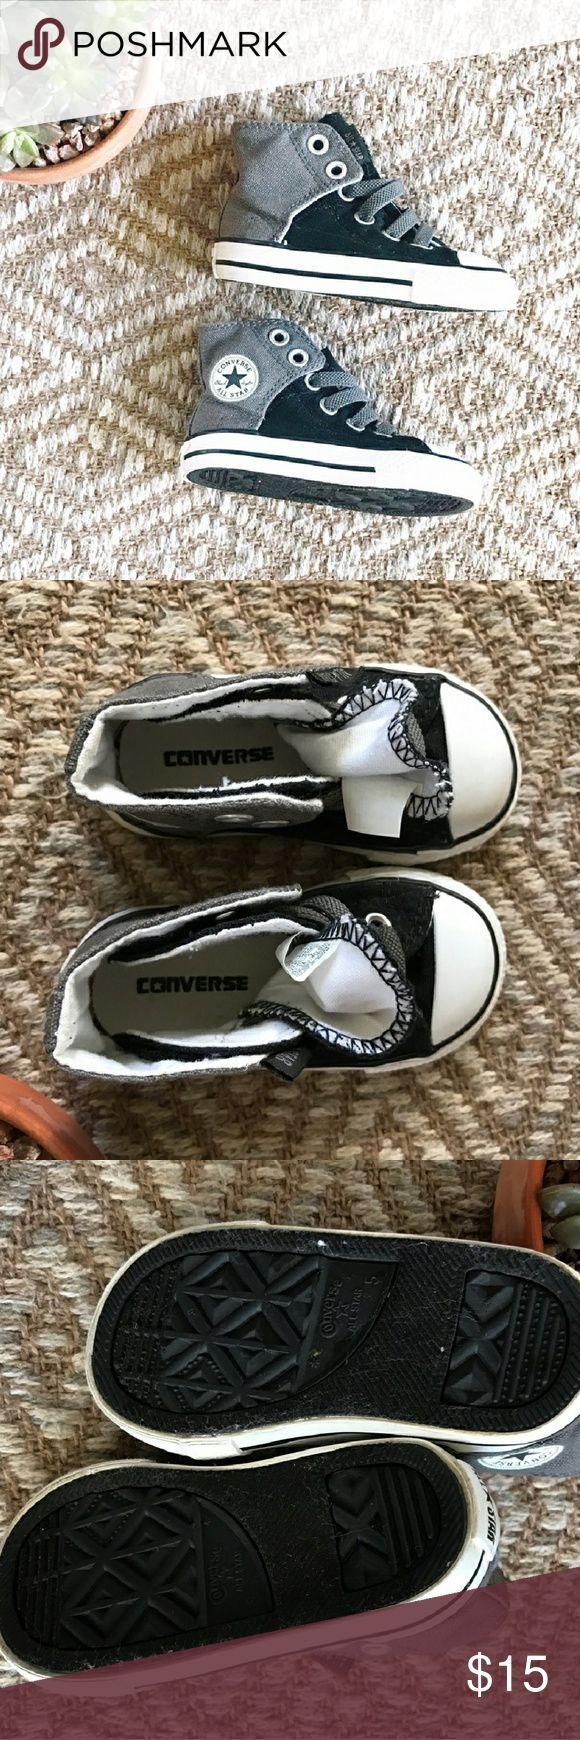 Boys Converse Sneakers! Your little man's first Converse. Very cool. Velcro closures. Like new size 5. Converse Shoes Sneakers